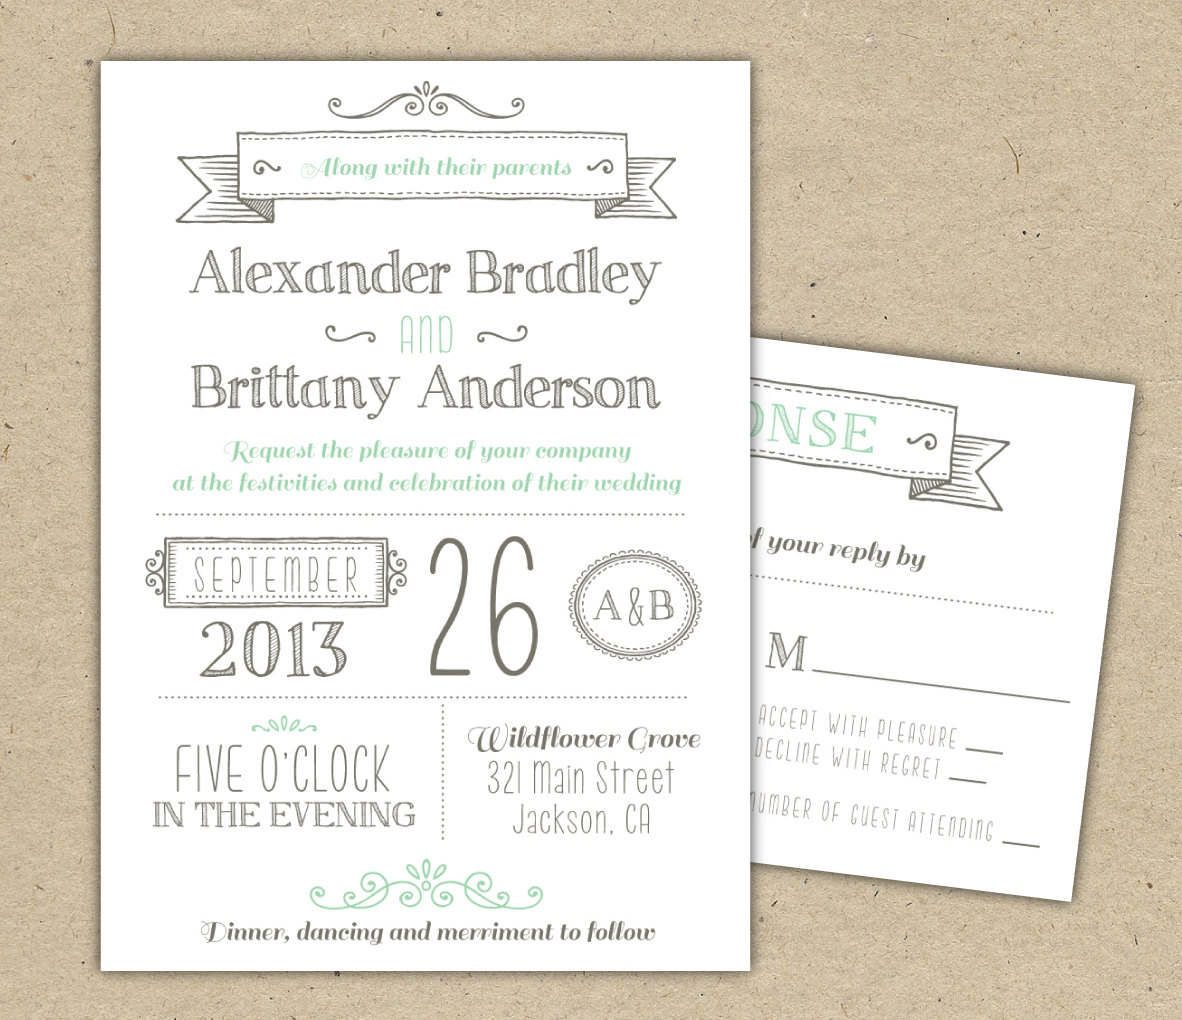 Free wedding invitations printables designs prosklhthria free wedding invitations printables designs pronofoot35fo Gallery